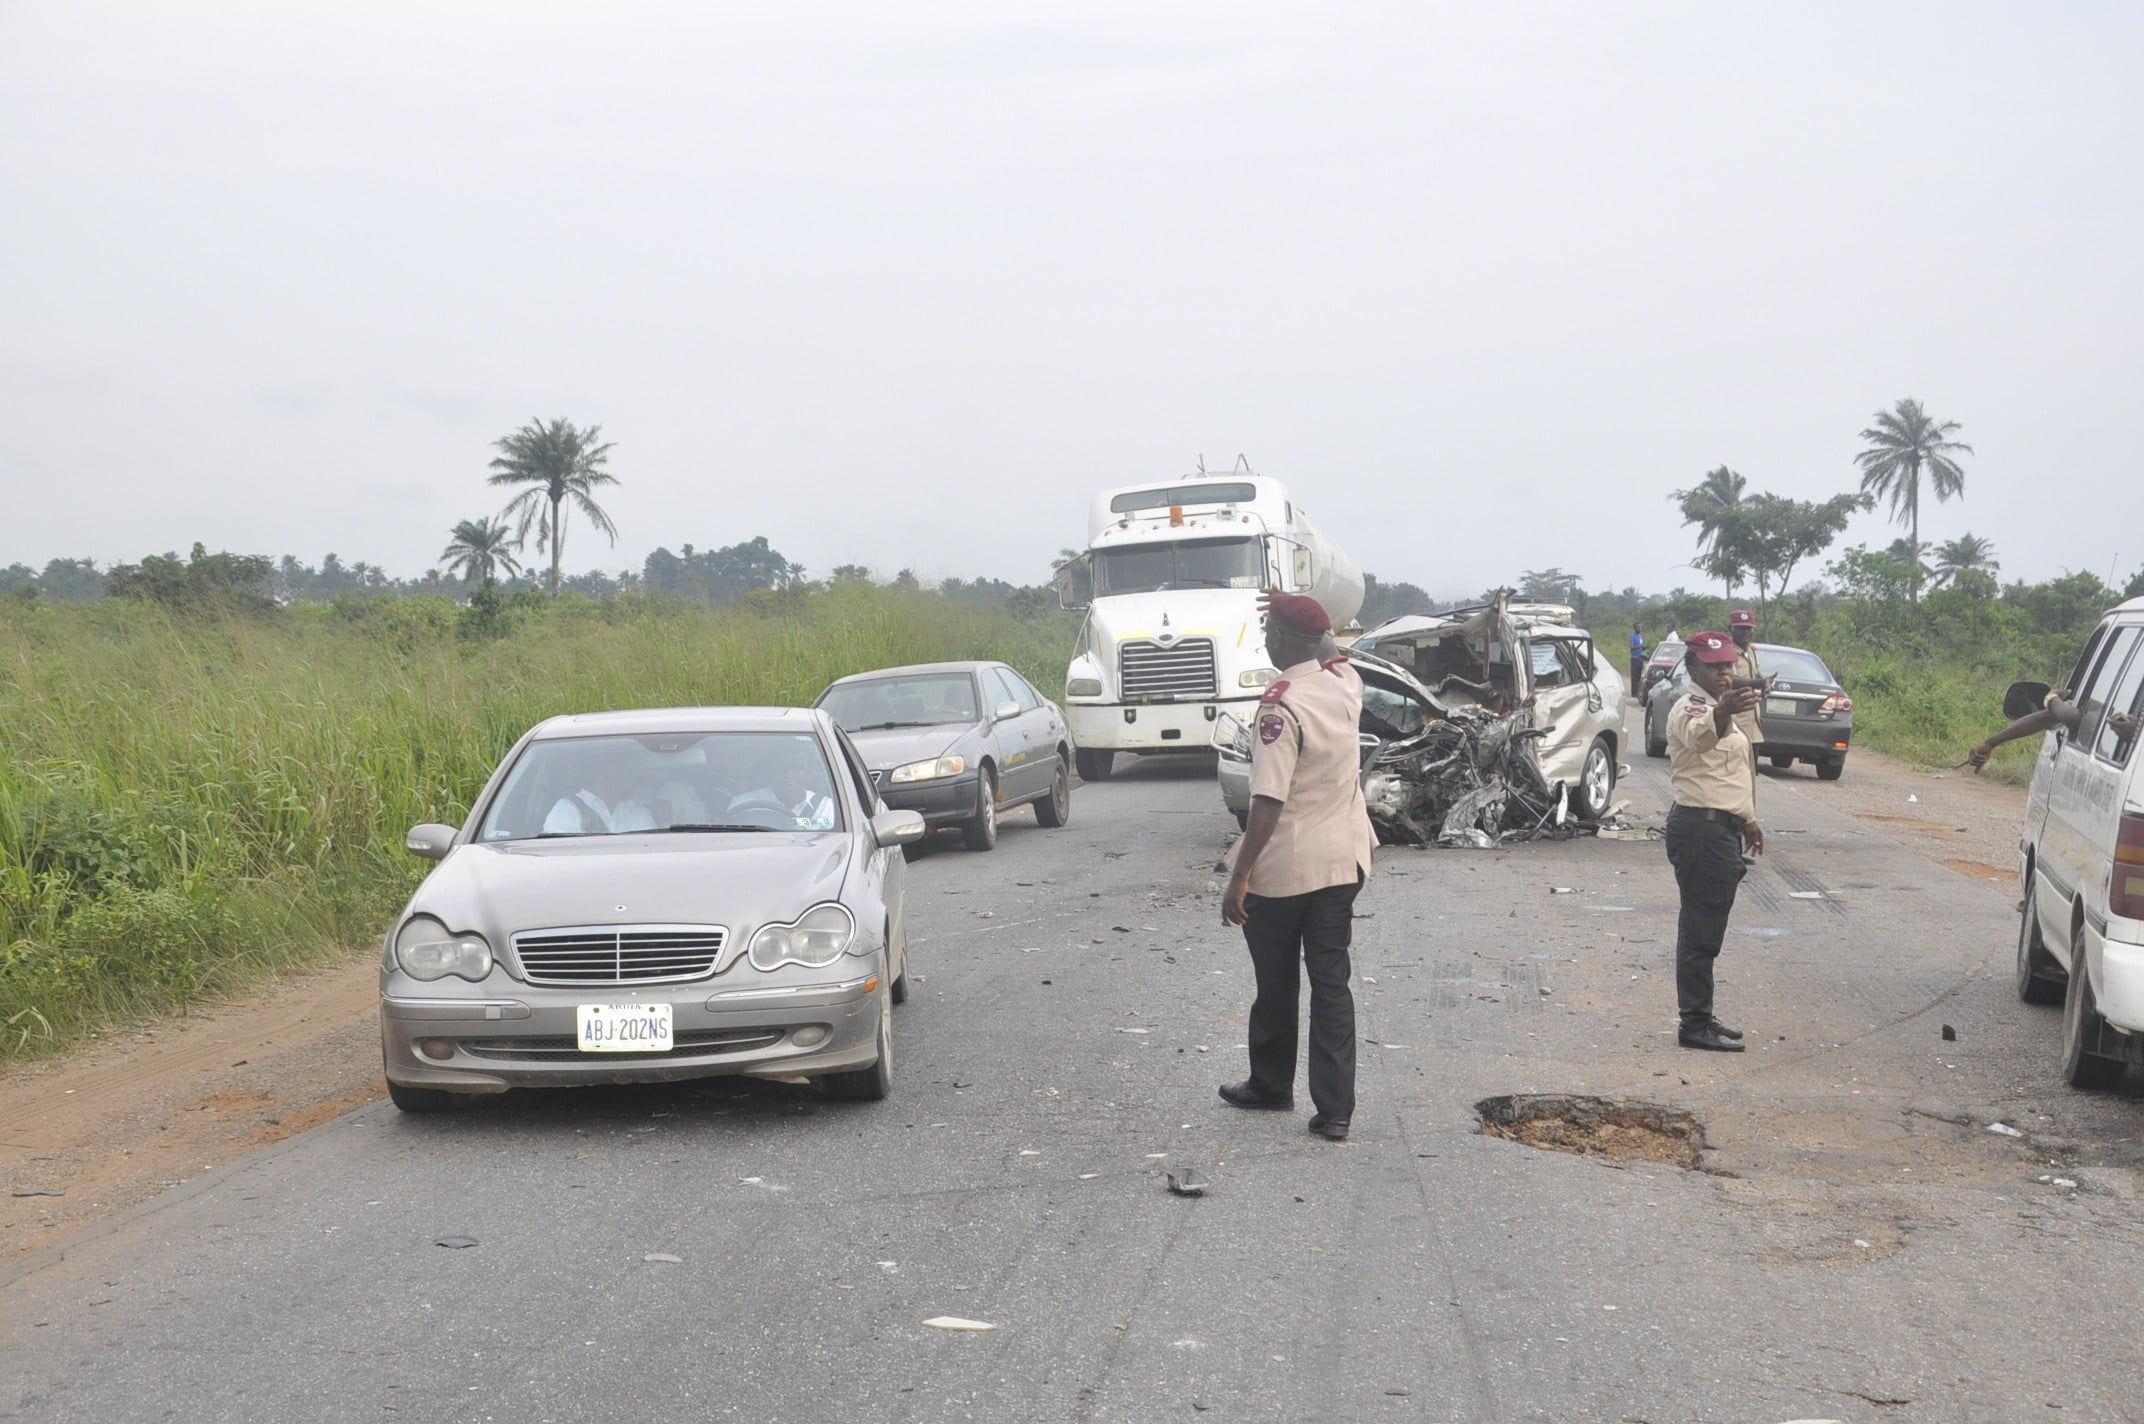 FRSC Officials controling traffic at the accident scene - Accidents: 168 people killed, 969 injured in Bauchi, Borno, Yobe - FRSC